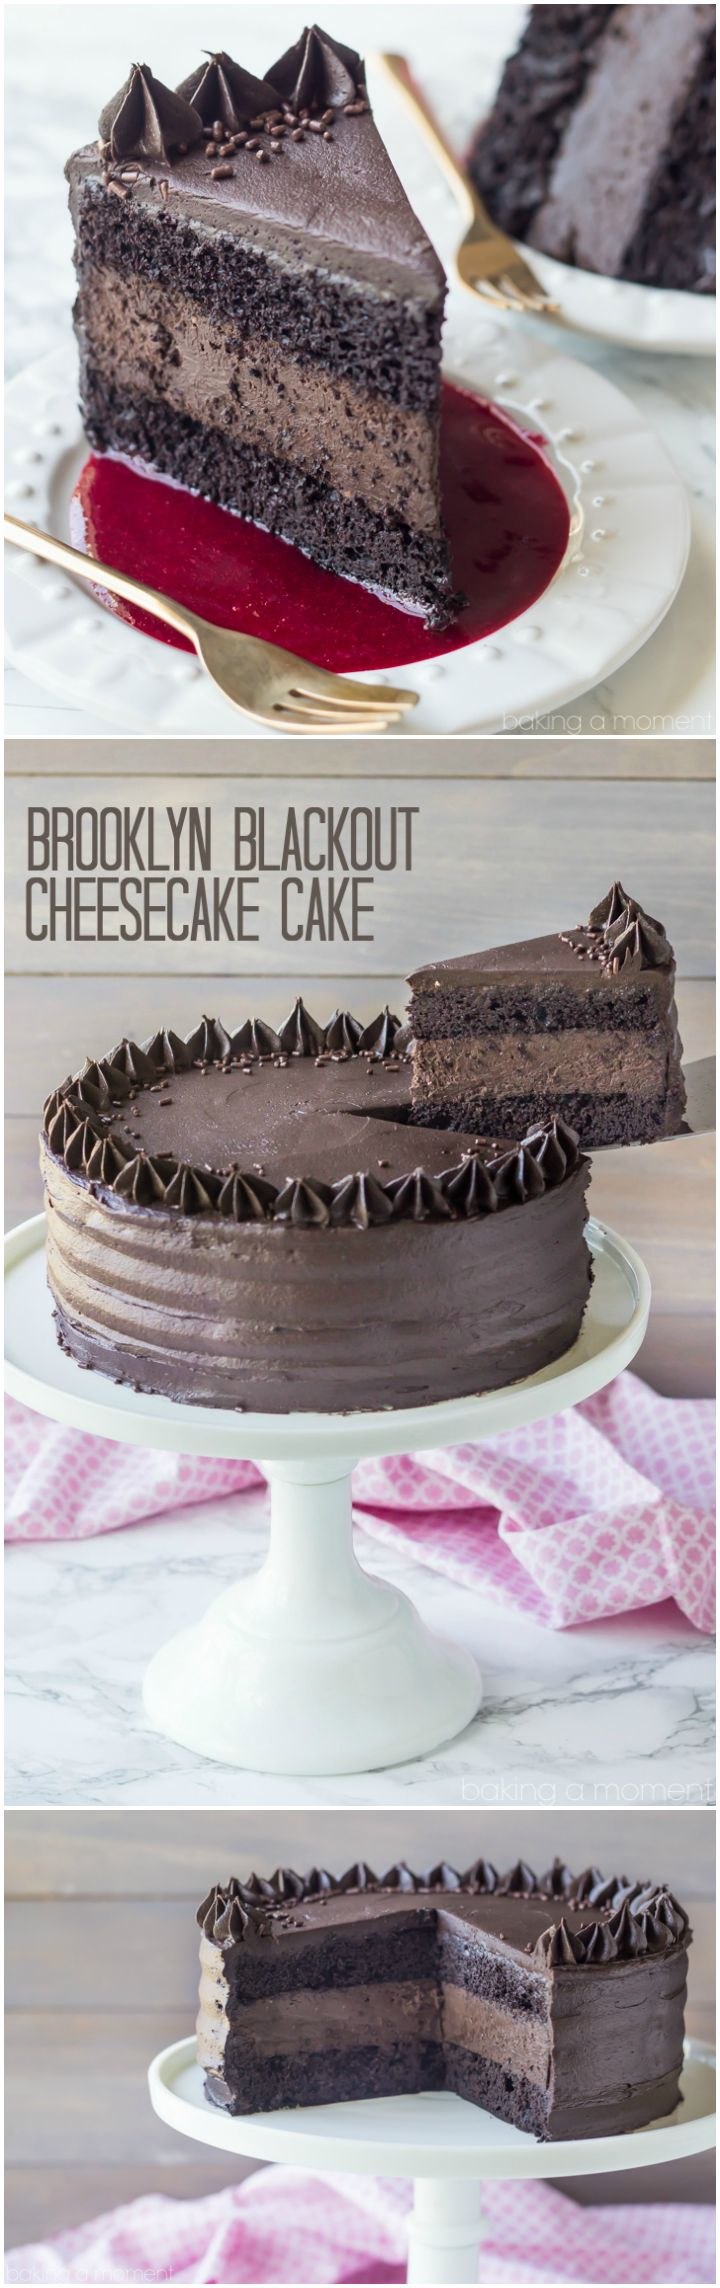 Brooklyn-Blackout-Cheesecake-Cake-Baking-a-Moment-wallpaper-wpc9003212